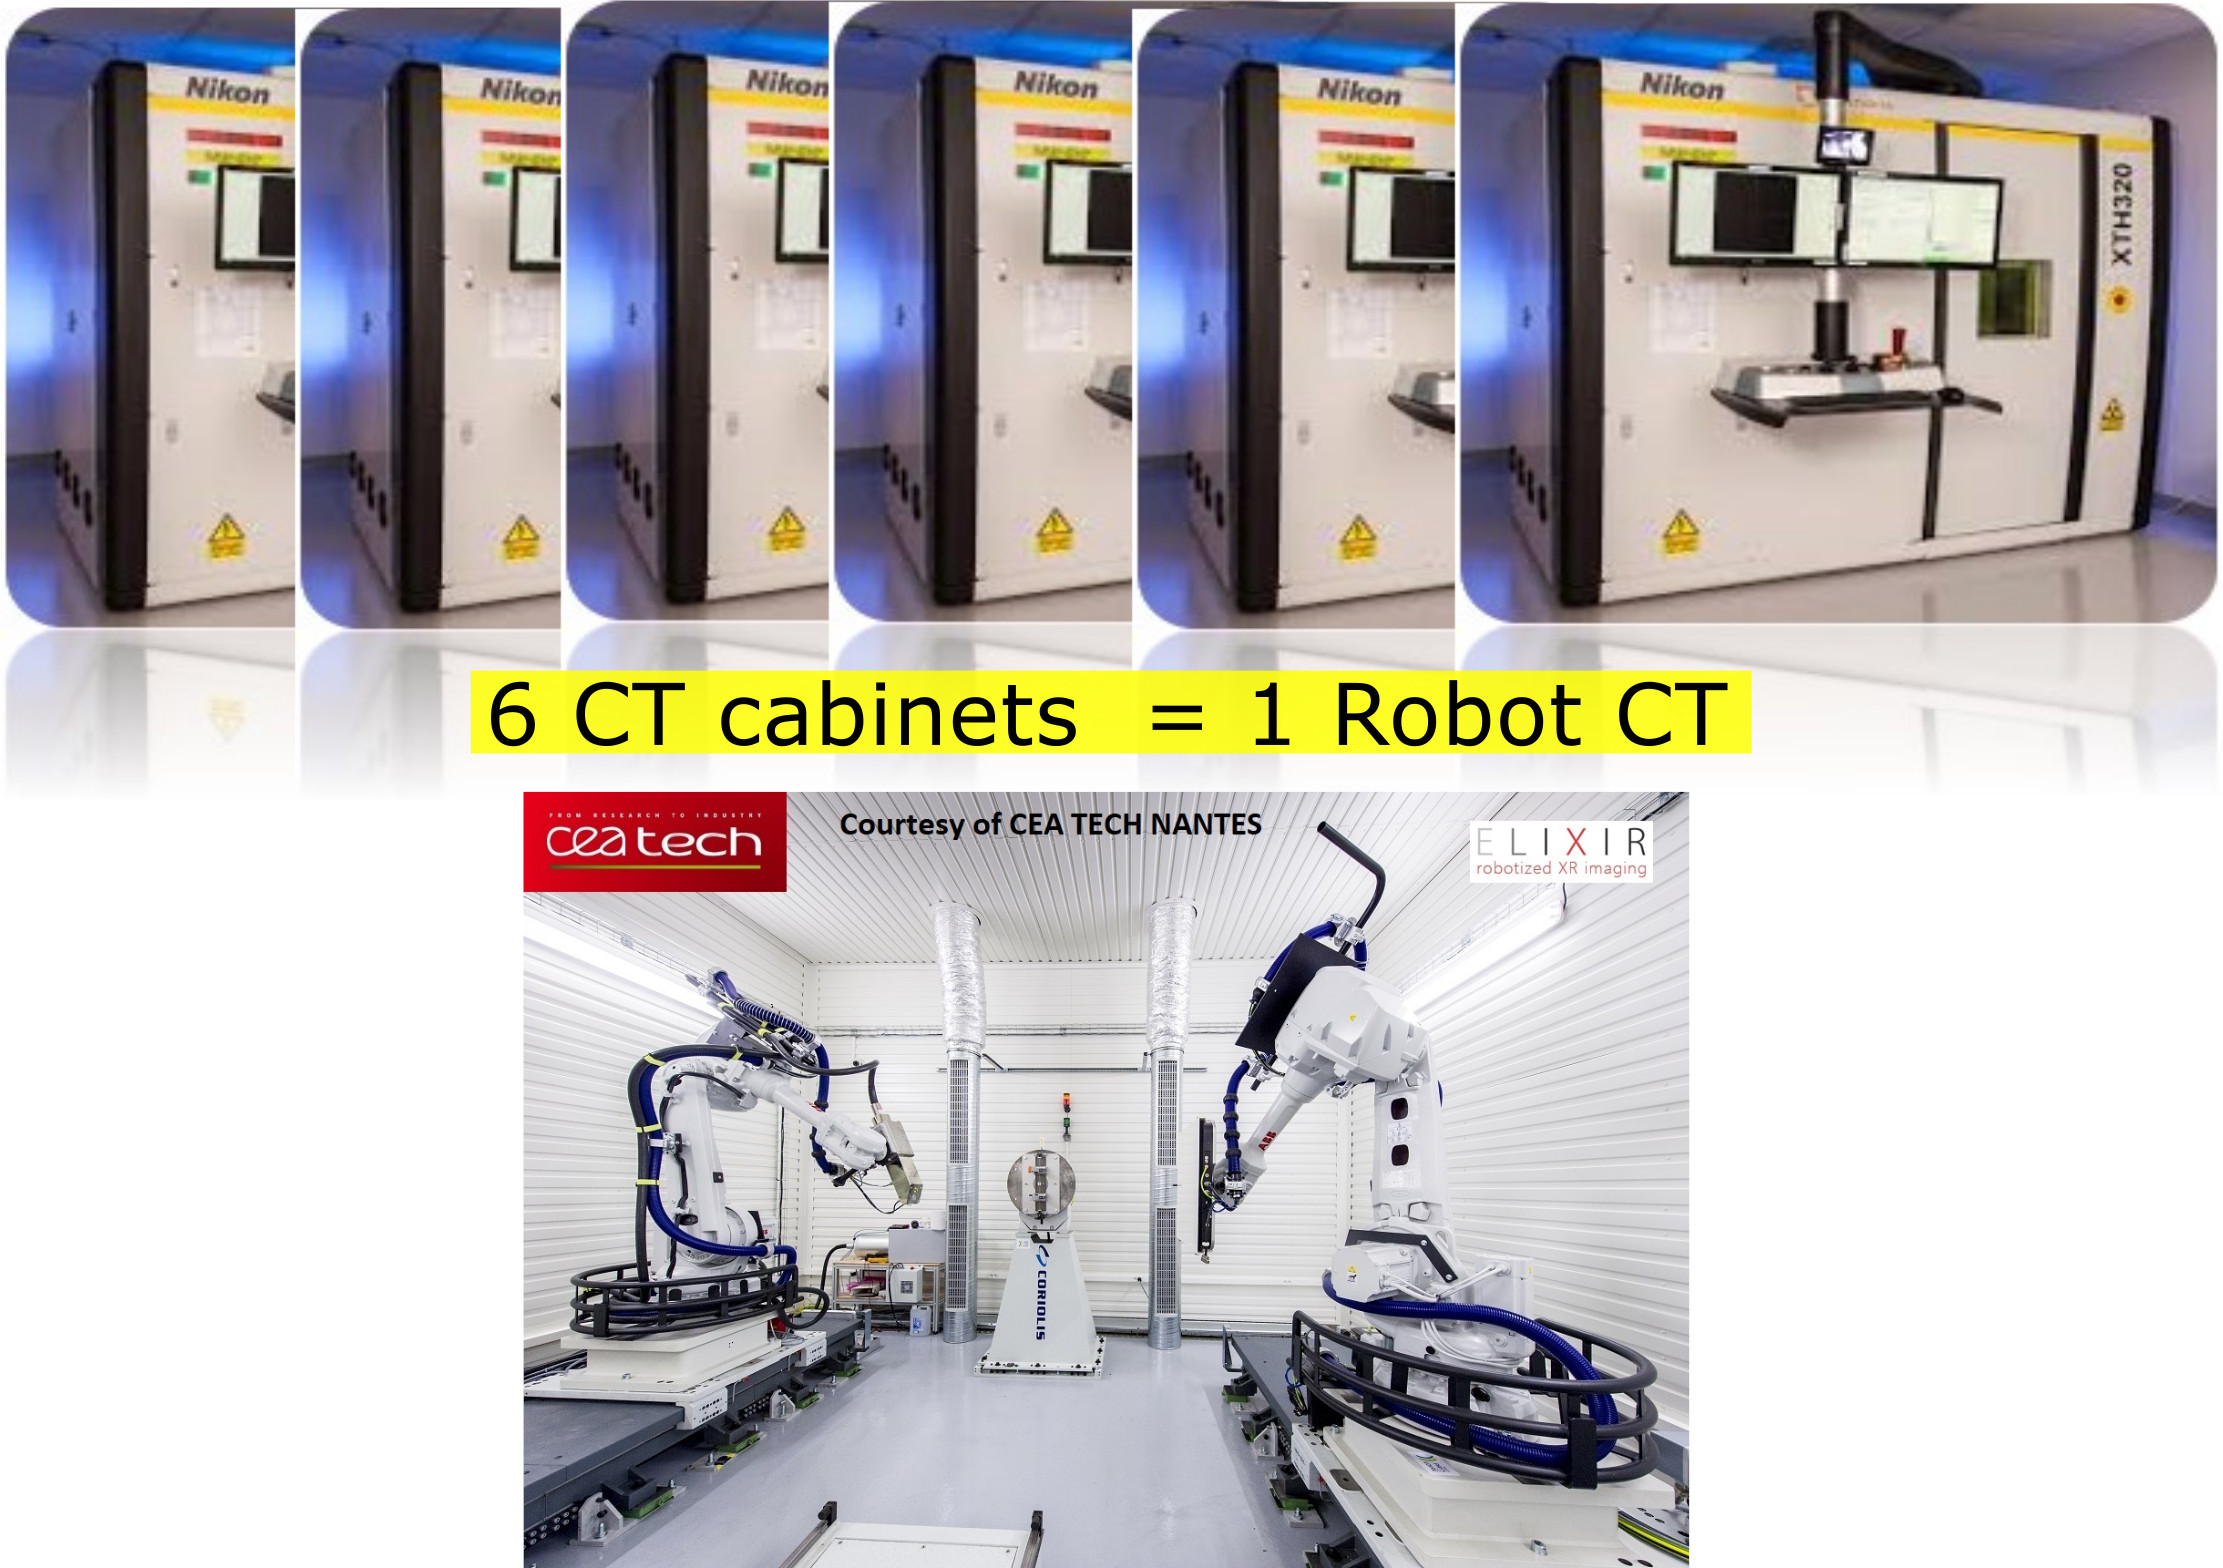 6 CT cabinets for 1 Robot CT